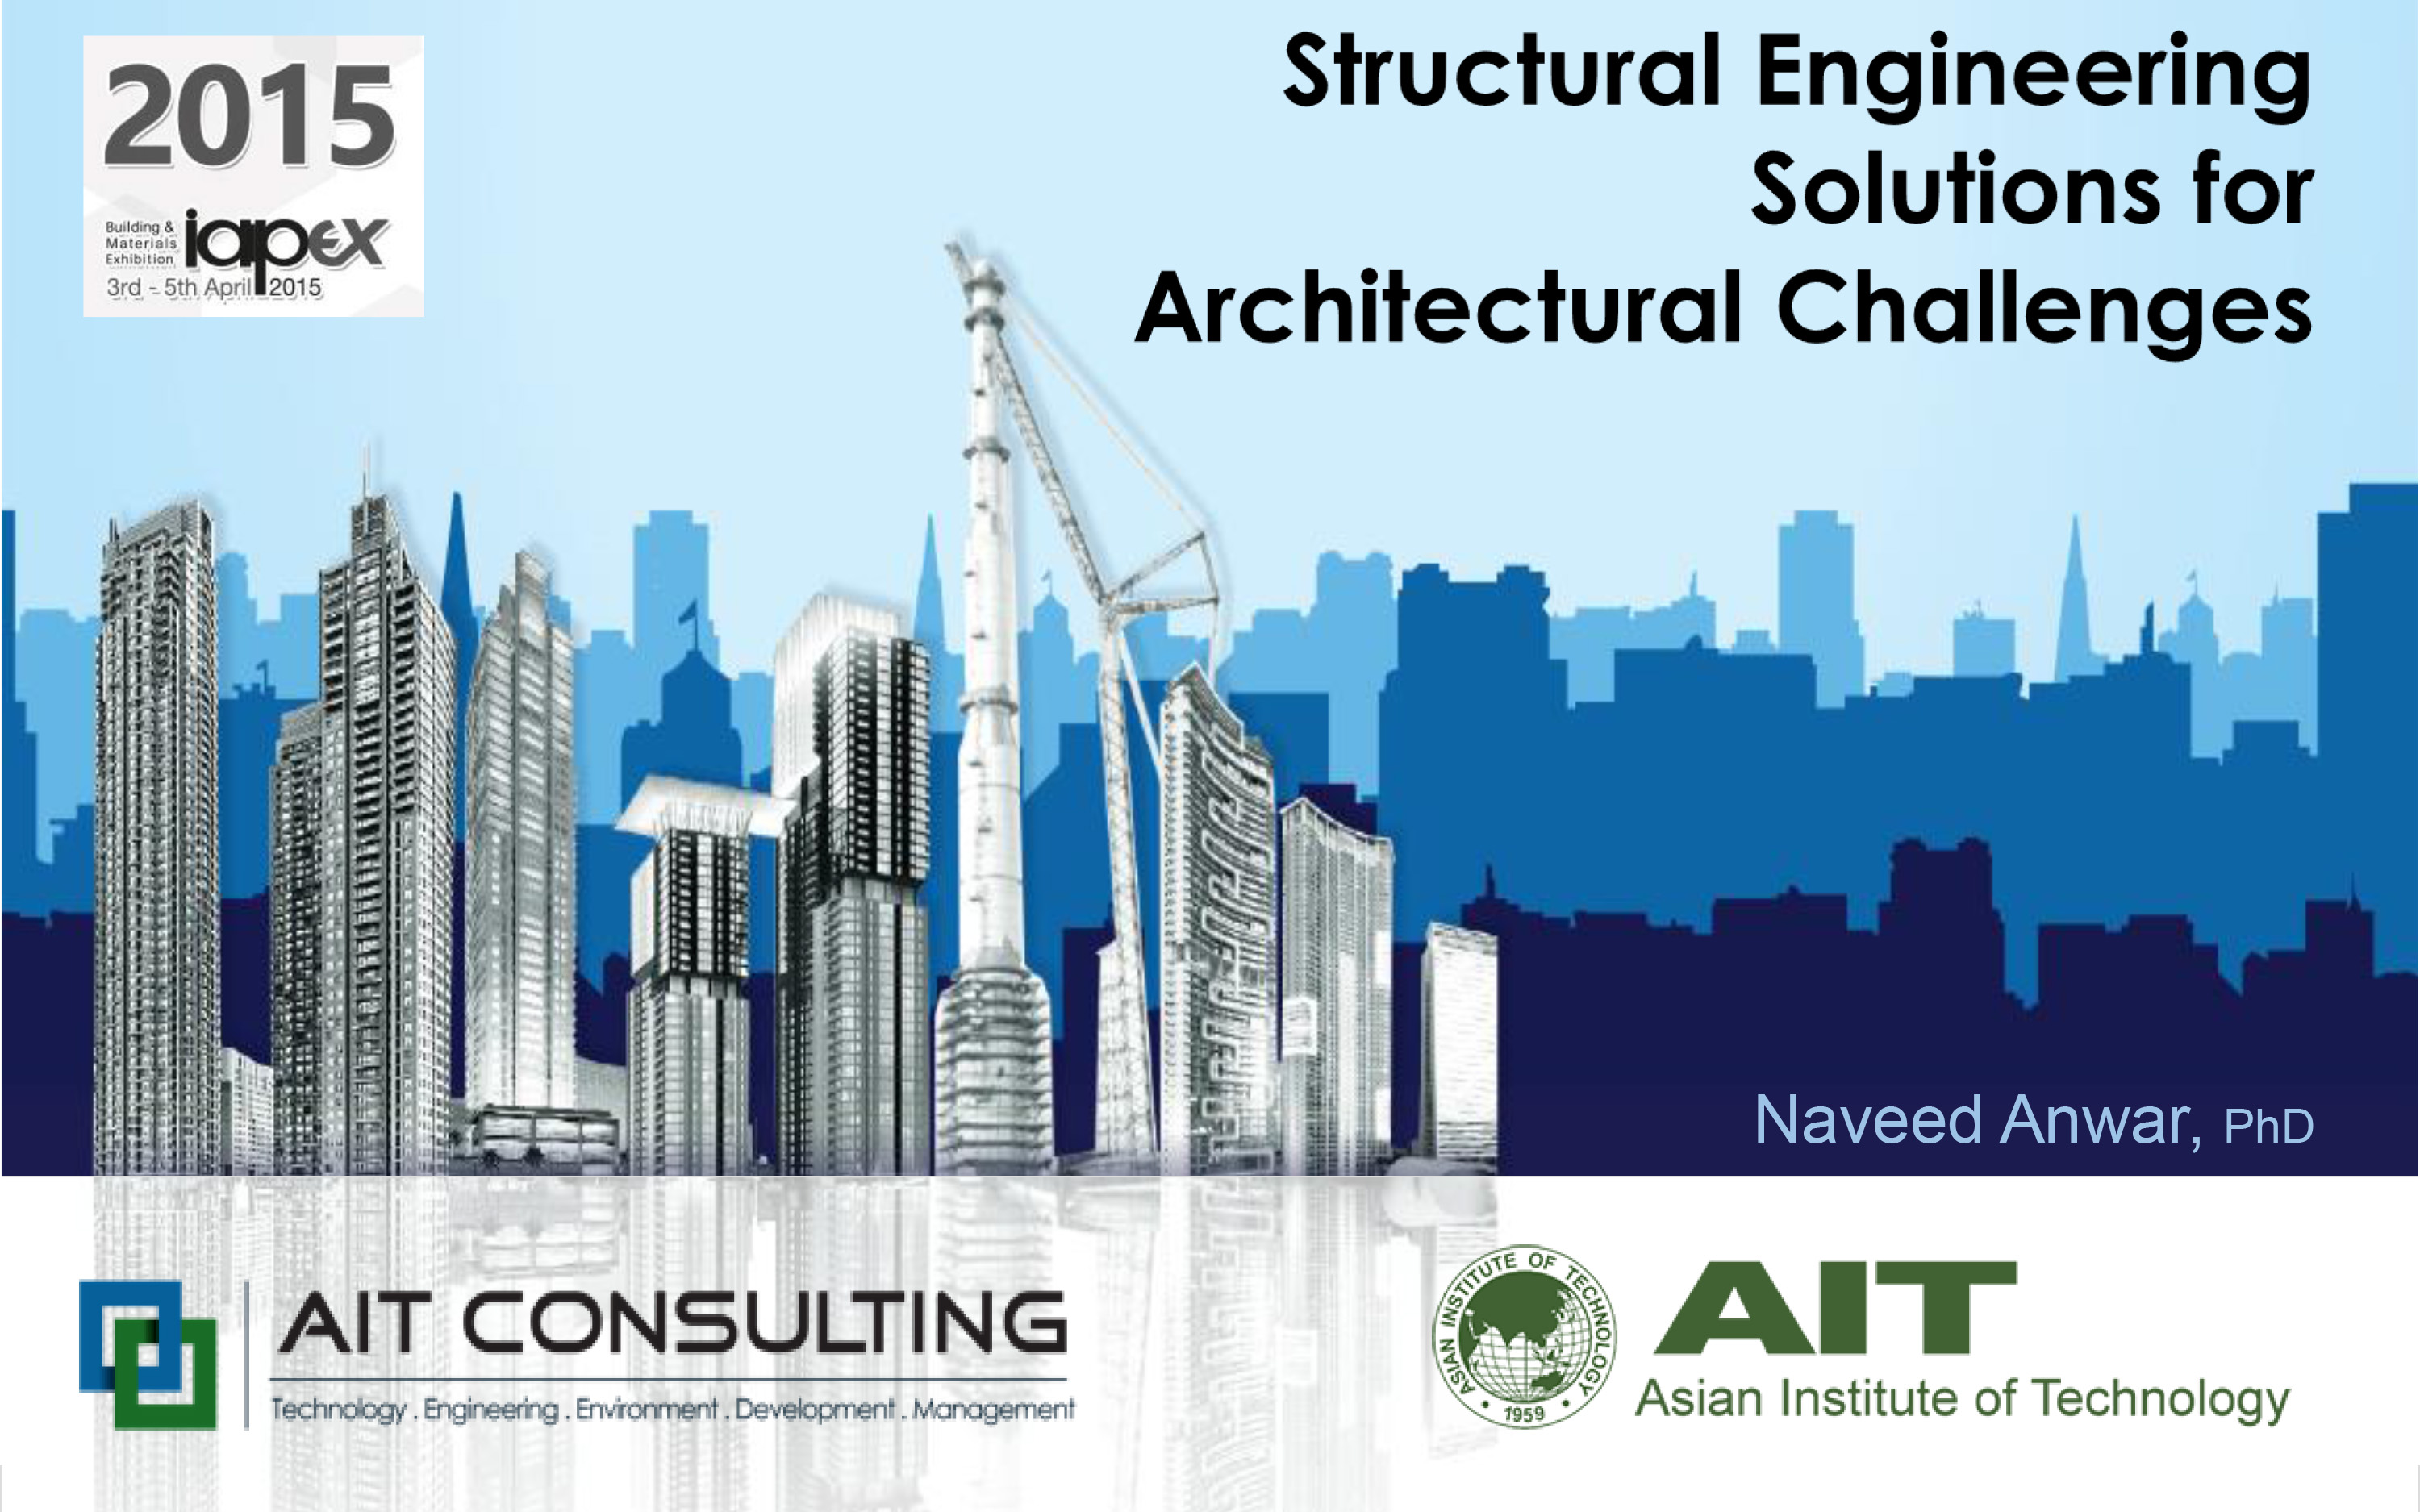 Structural Engineering Solutions for Architectural Challenges